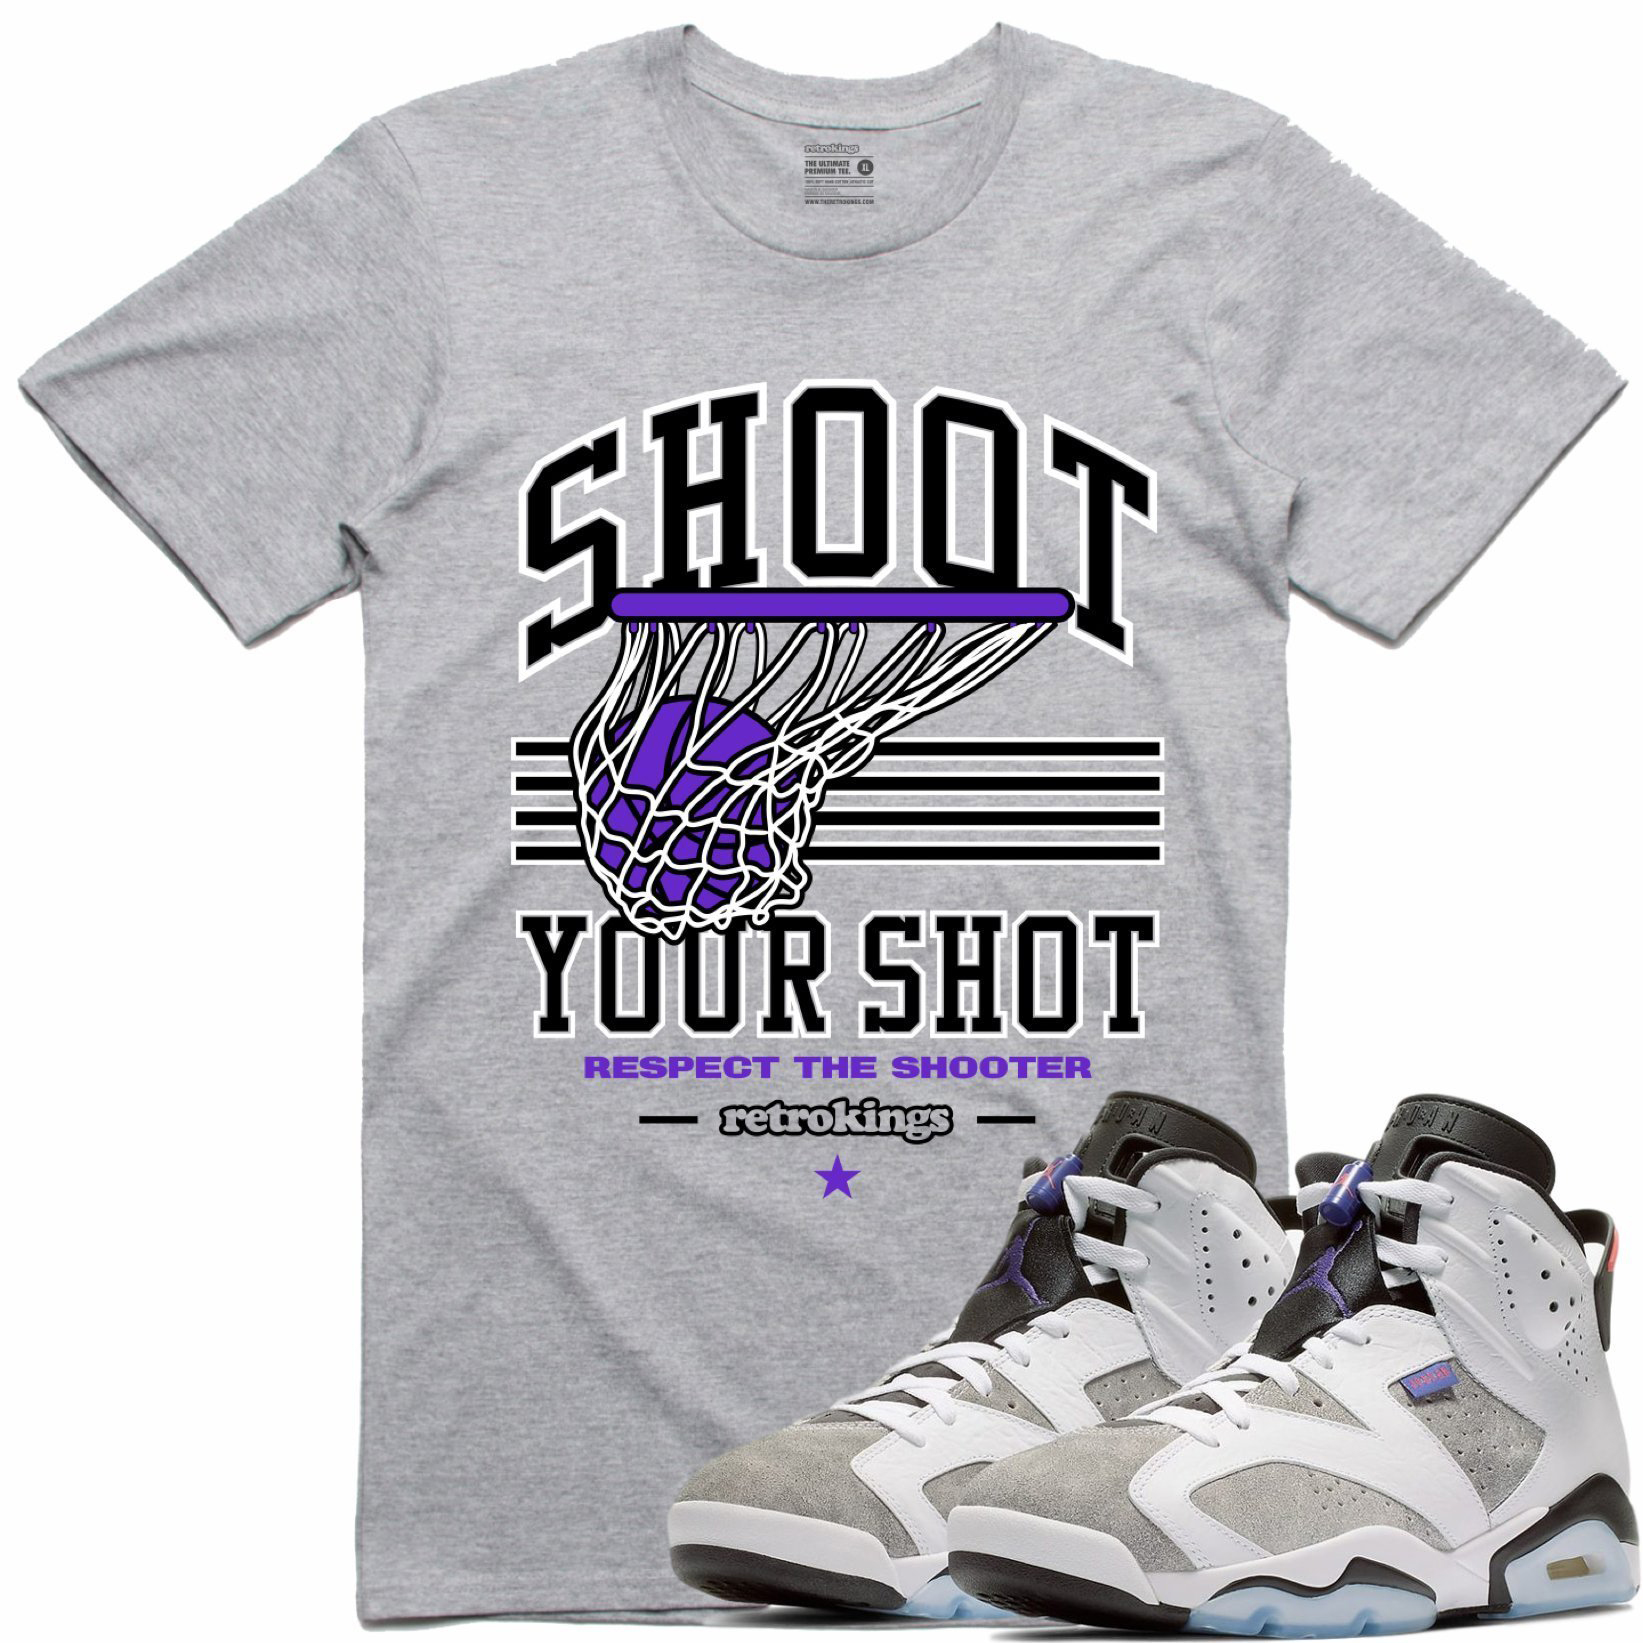 air-jordan-6-flint-grey-sneaker-tee-shirt-retro-kings-4